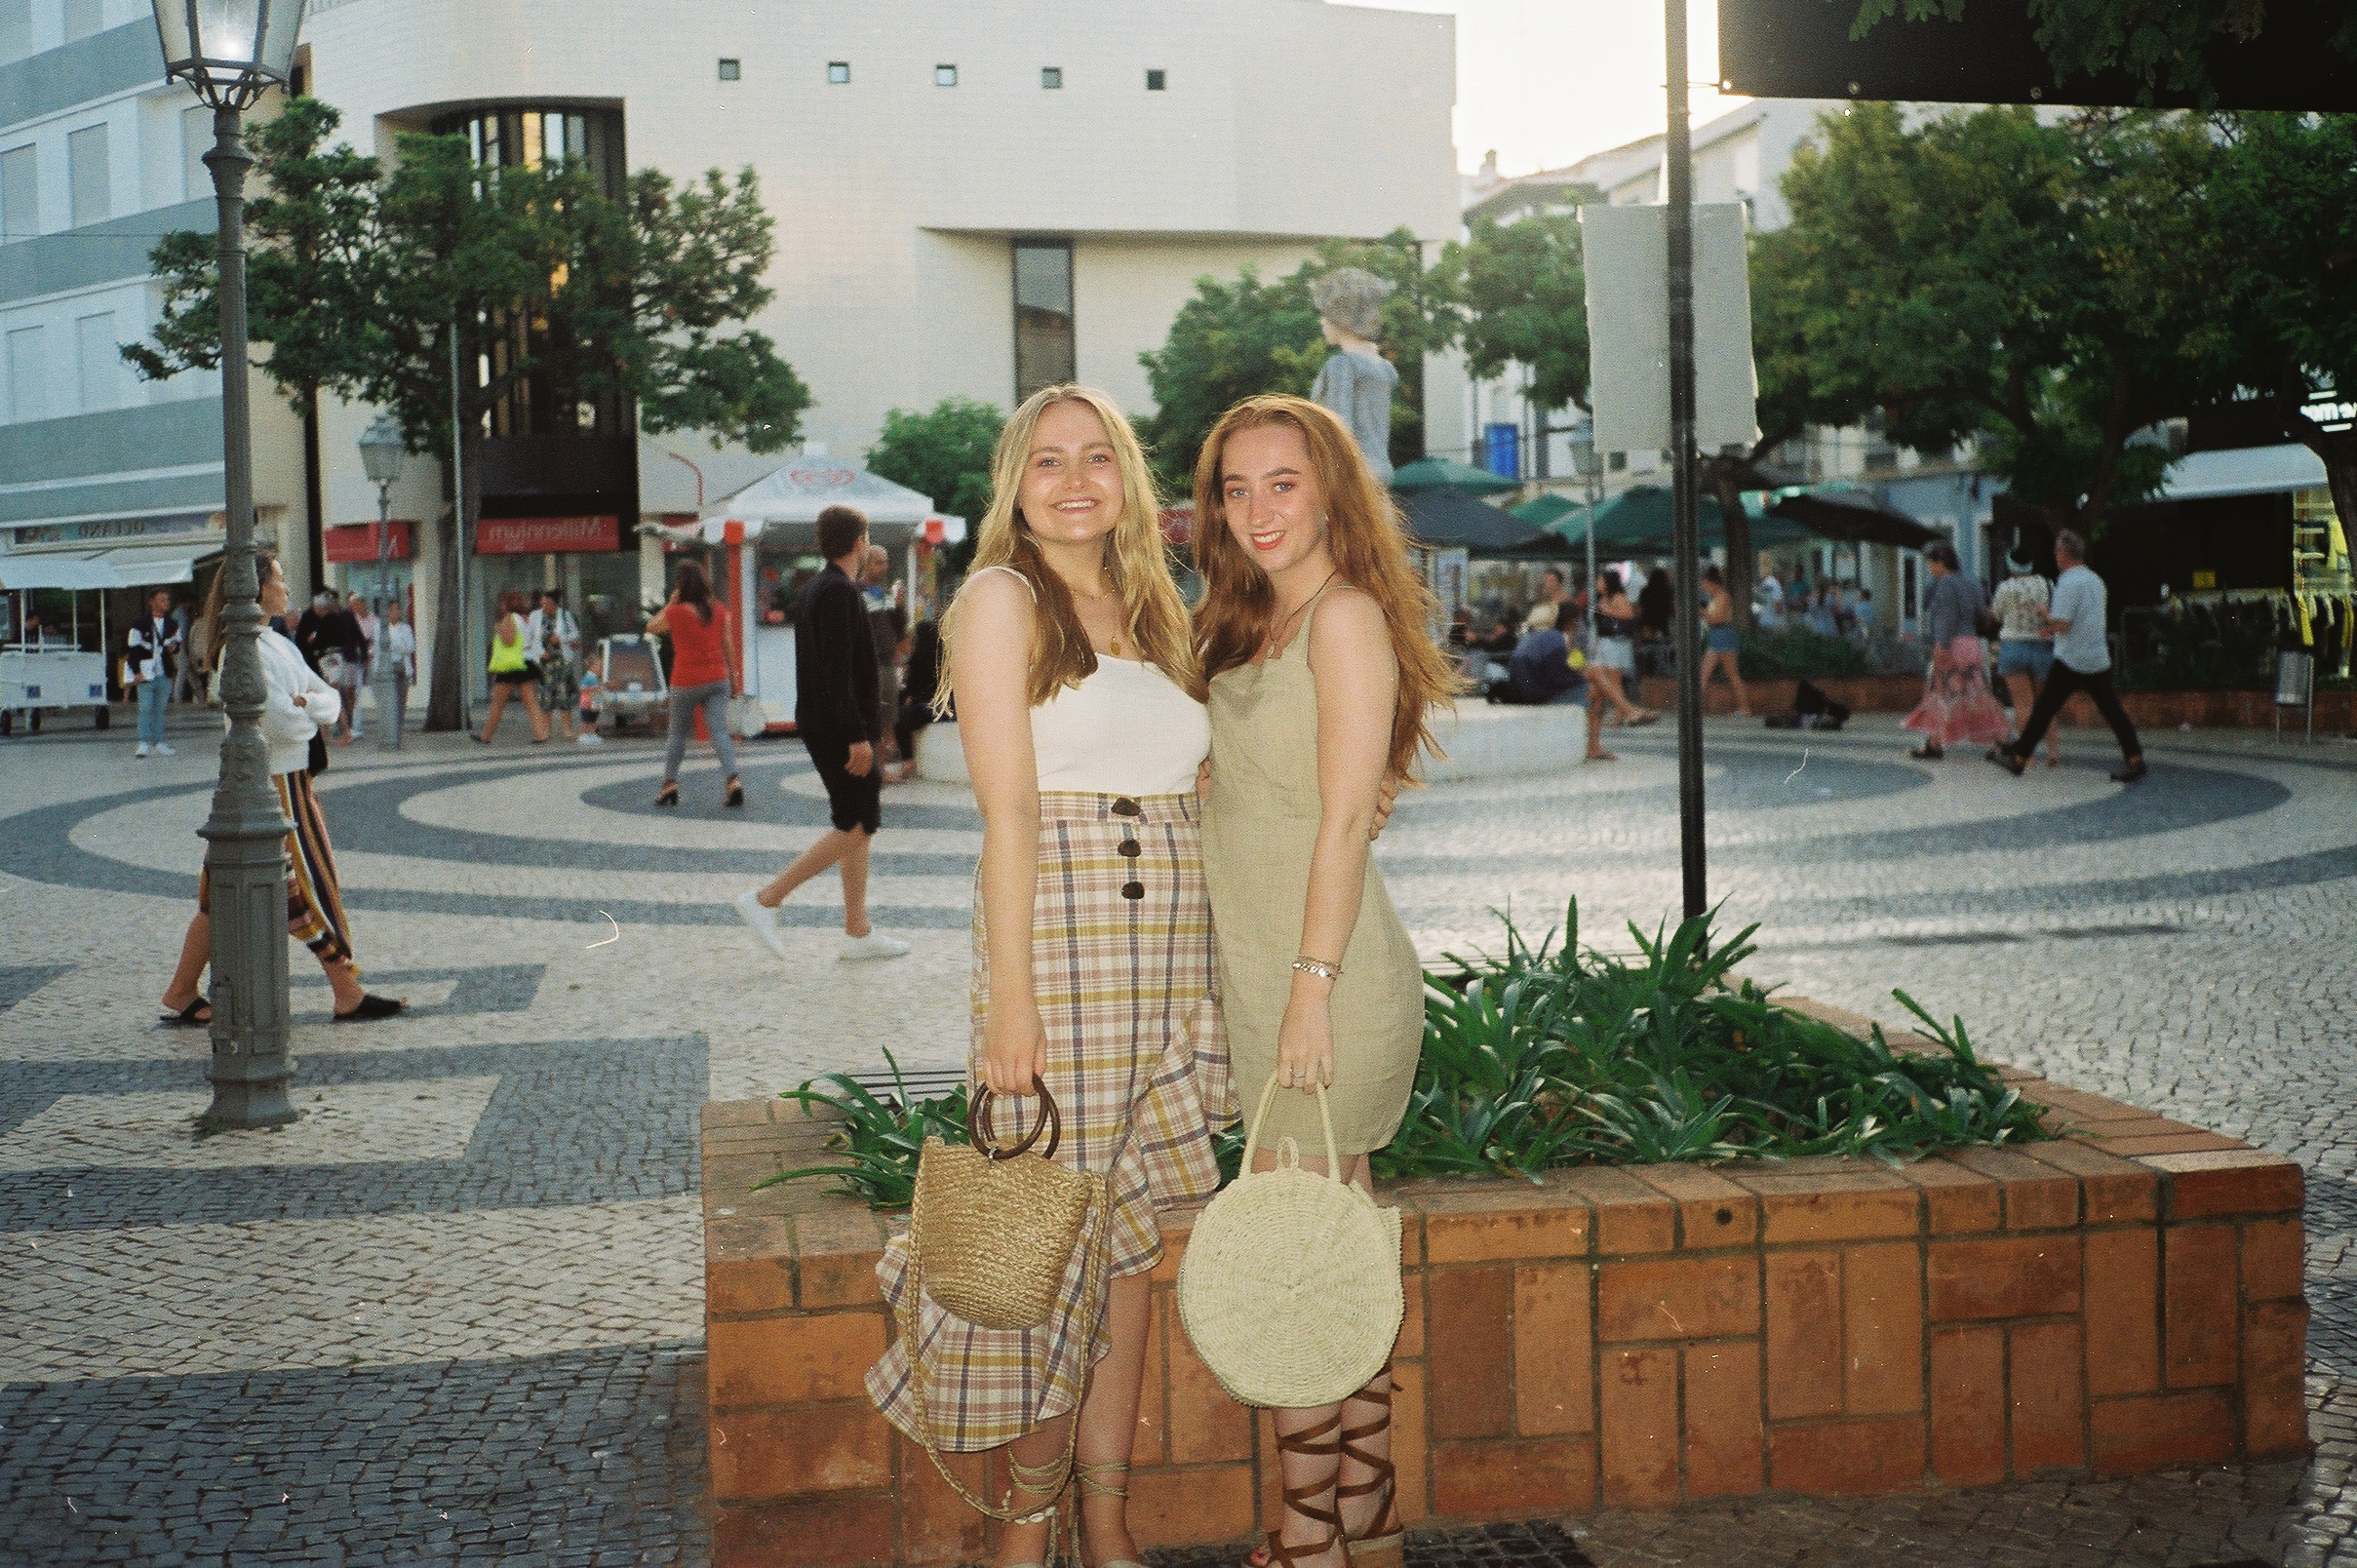 a-girls-trip-to-portugal-on-35mm-film24.jpg